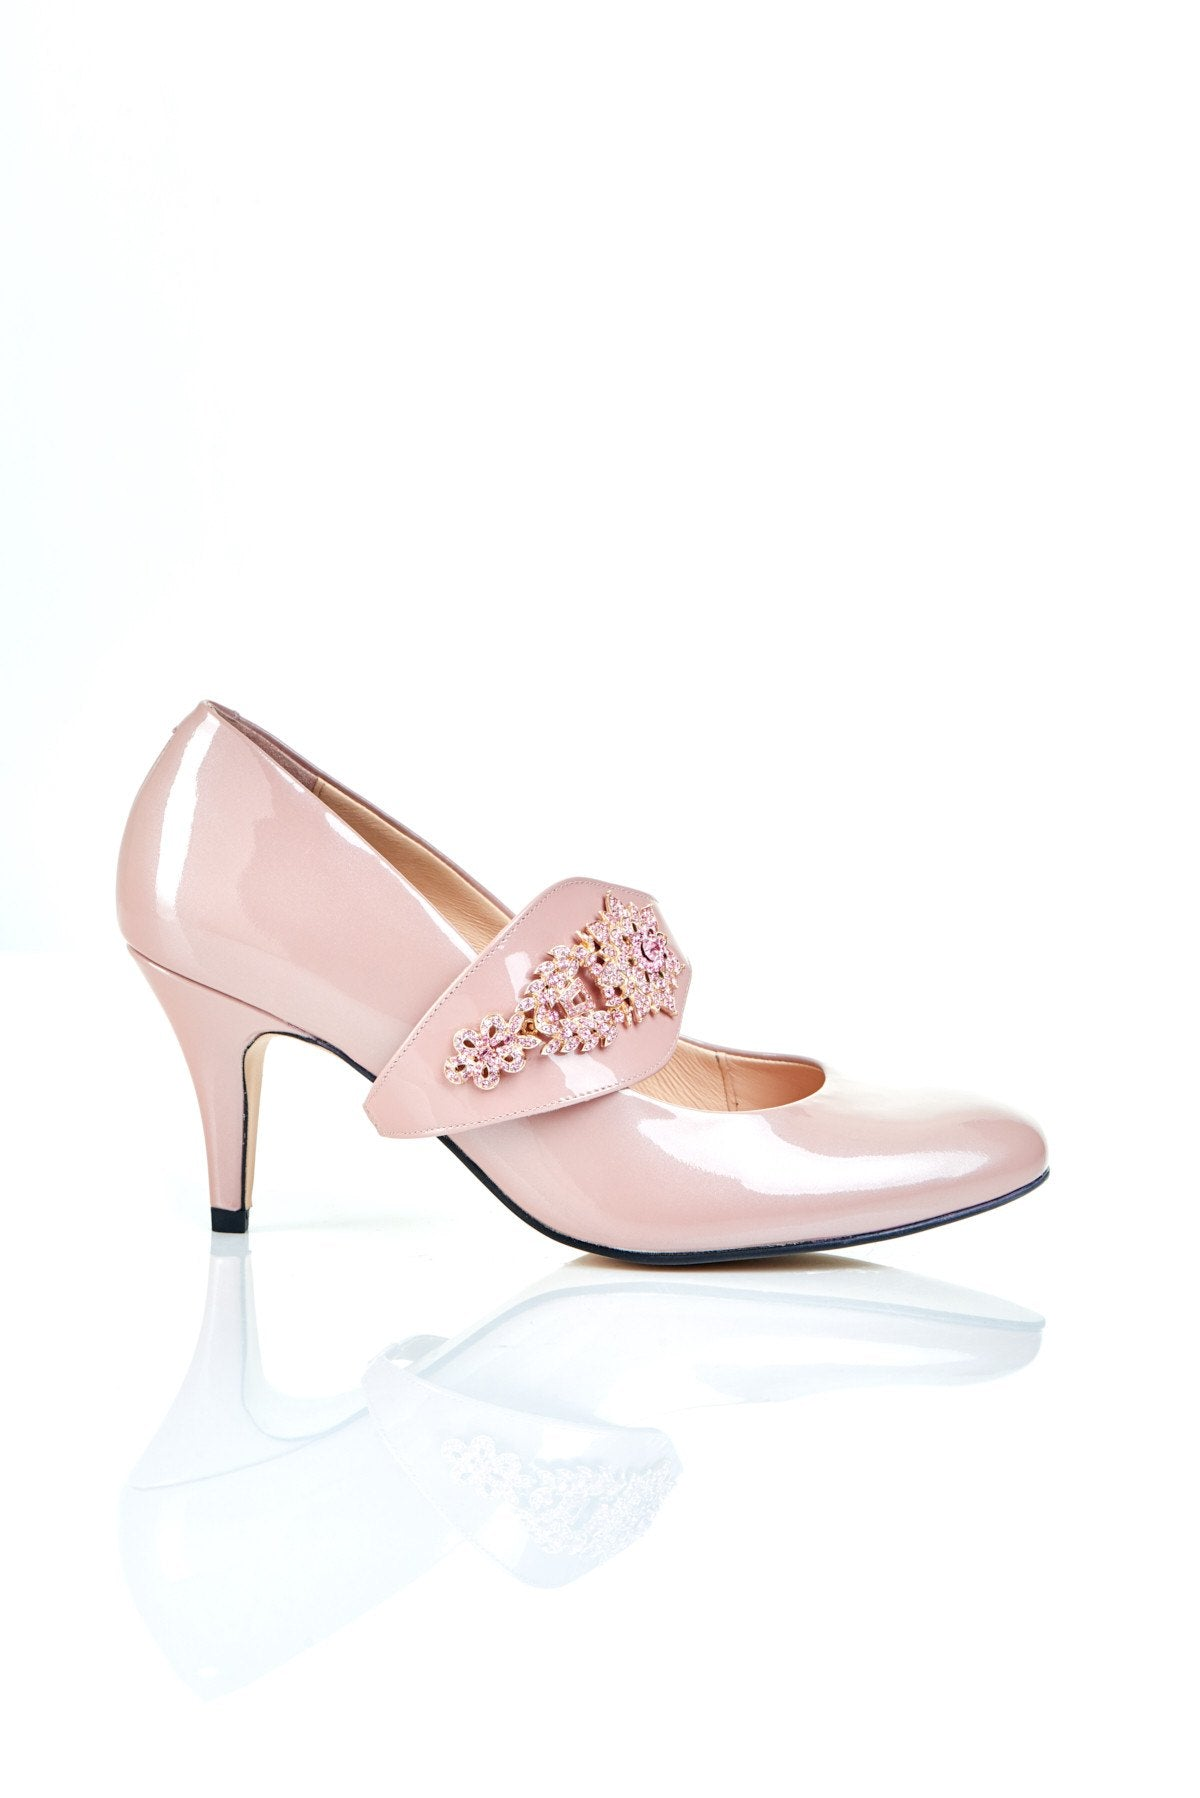 Equally Ever After - in Blush - Shoes by Shaherazad